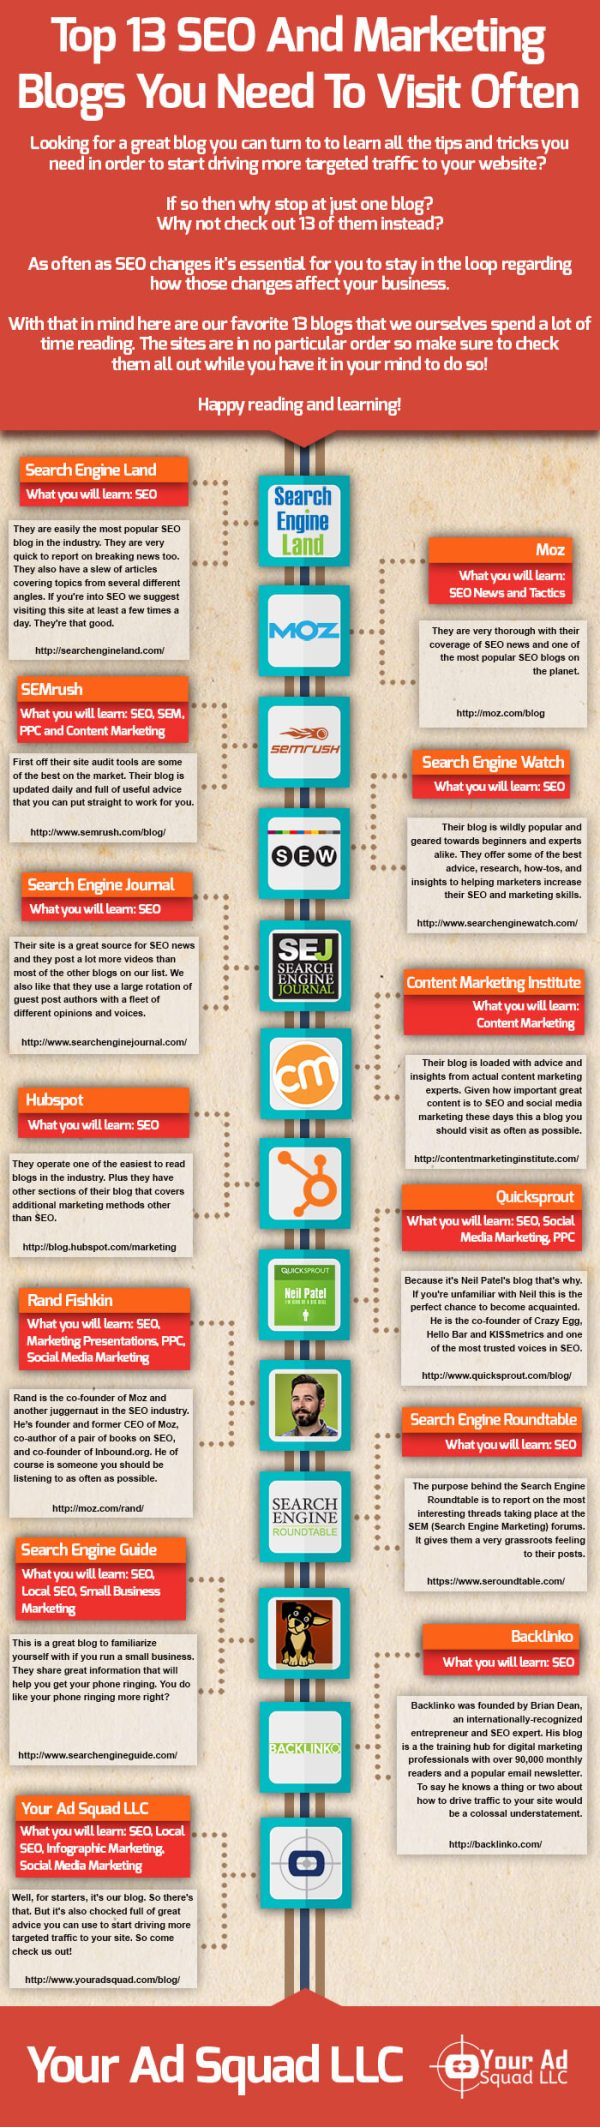 Top-13-SEO-Blogs-Infographic4